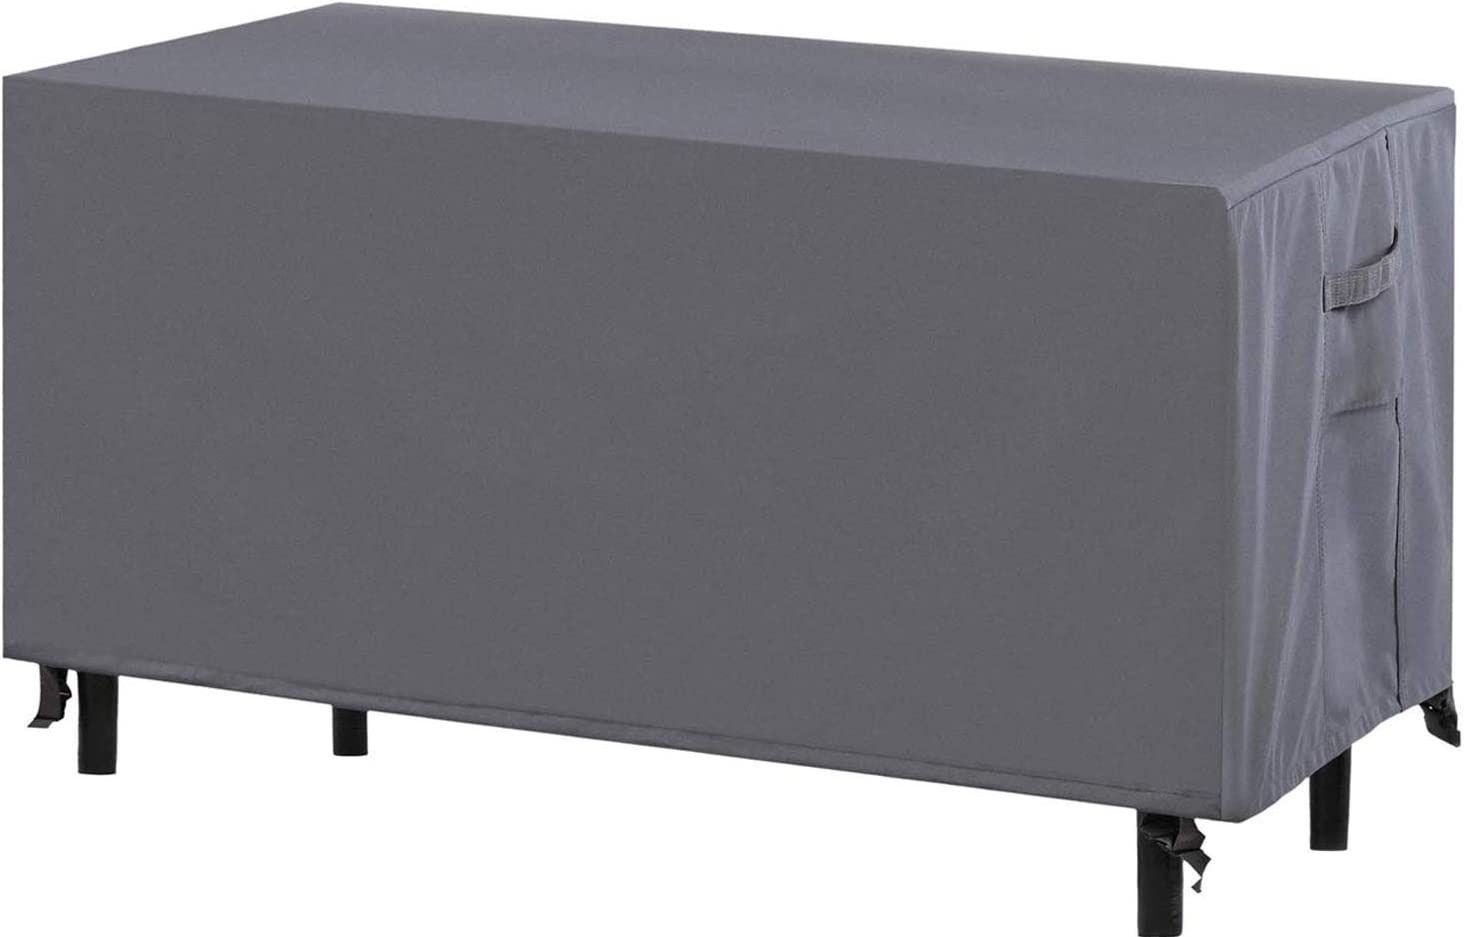 Coffee Table Cover | All Weather Outdoor Patio Furniture Cover | Air Vents | Waterproof | Dustproof / Windproof / Fade Resistant Fabric | Secure Fit with Buckel / Draw Cord Locking System |